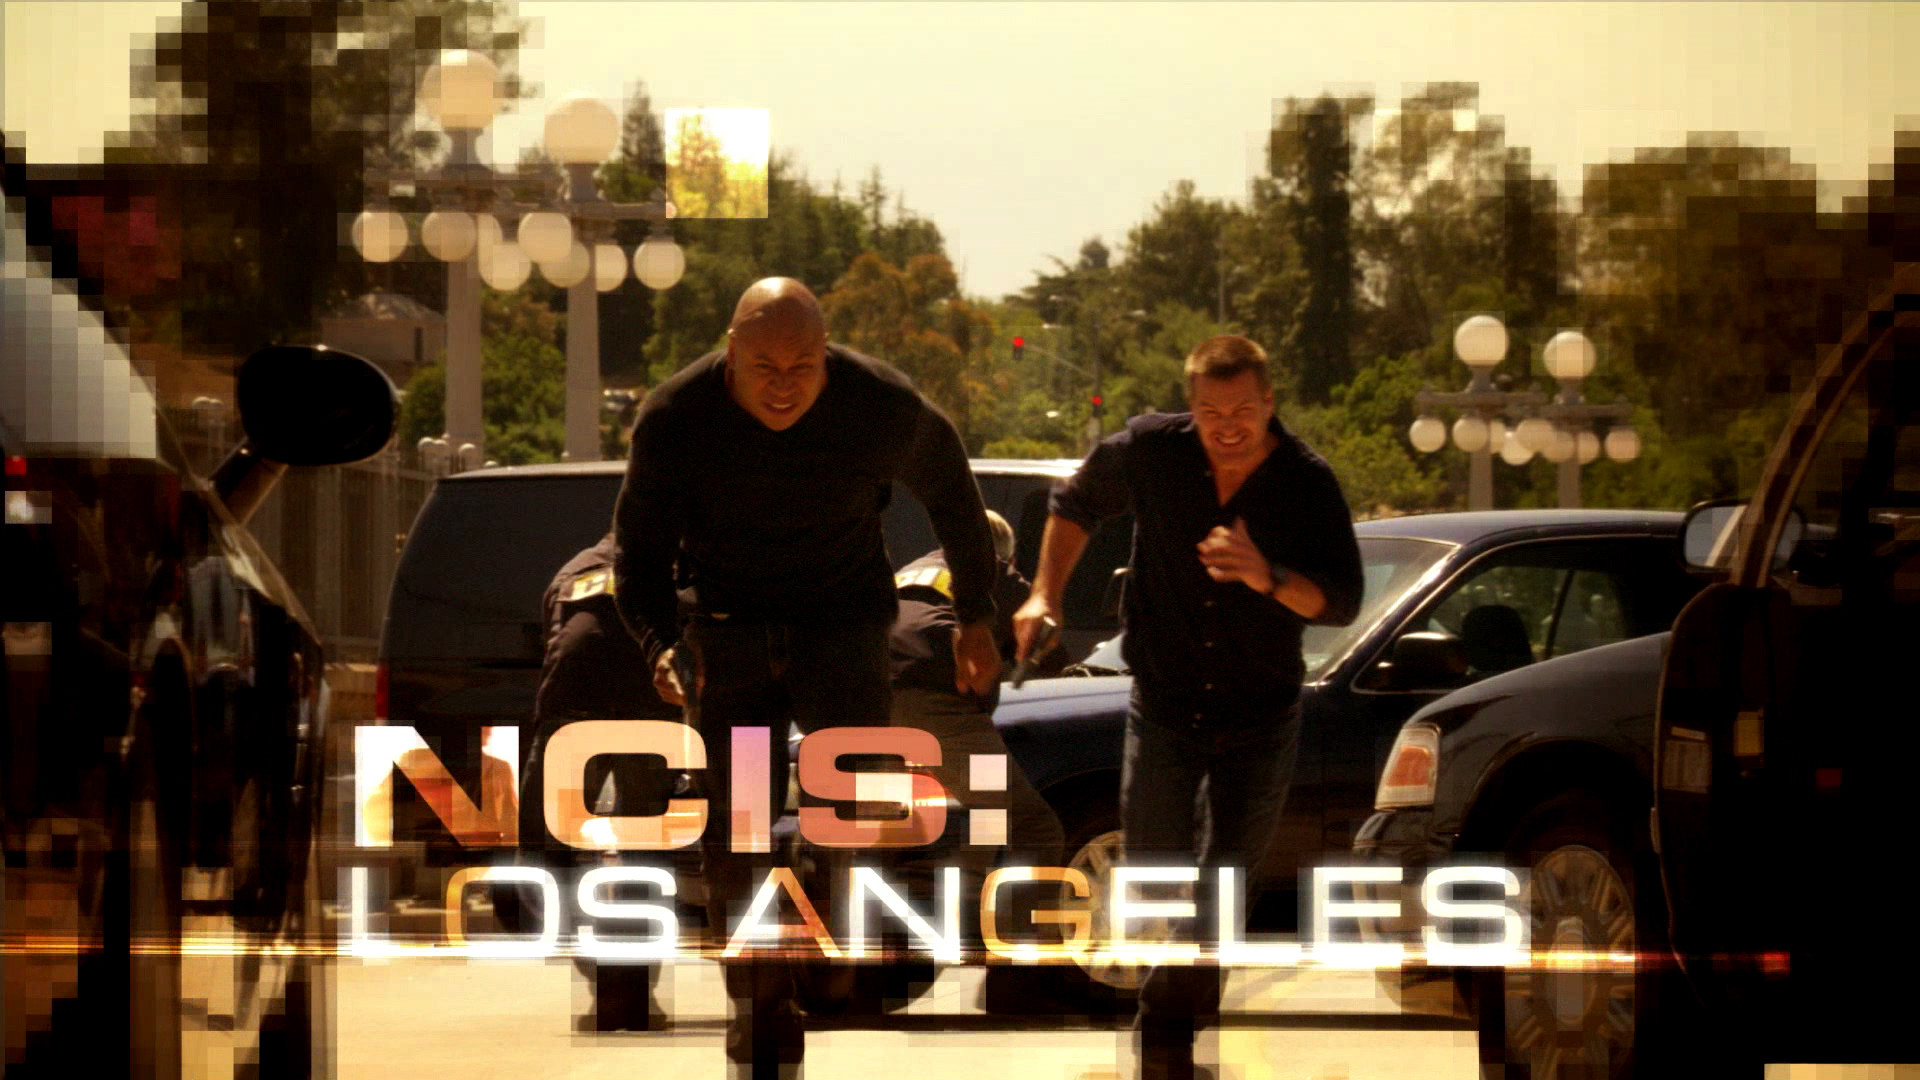 Res: 1920x1080, NCIS: Los Angeles Wallpapers 3 - 1920 X 1080